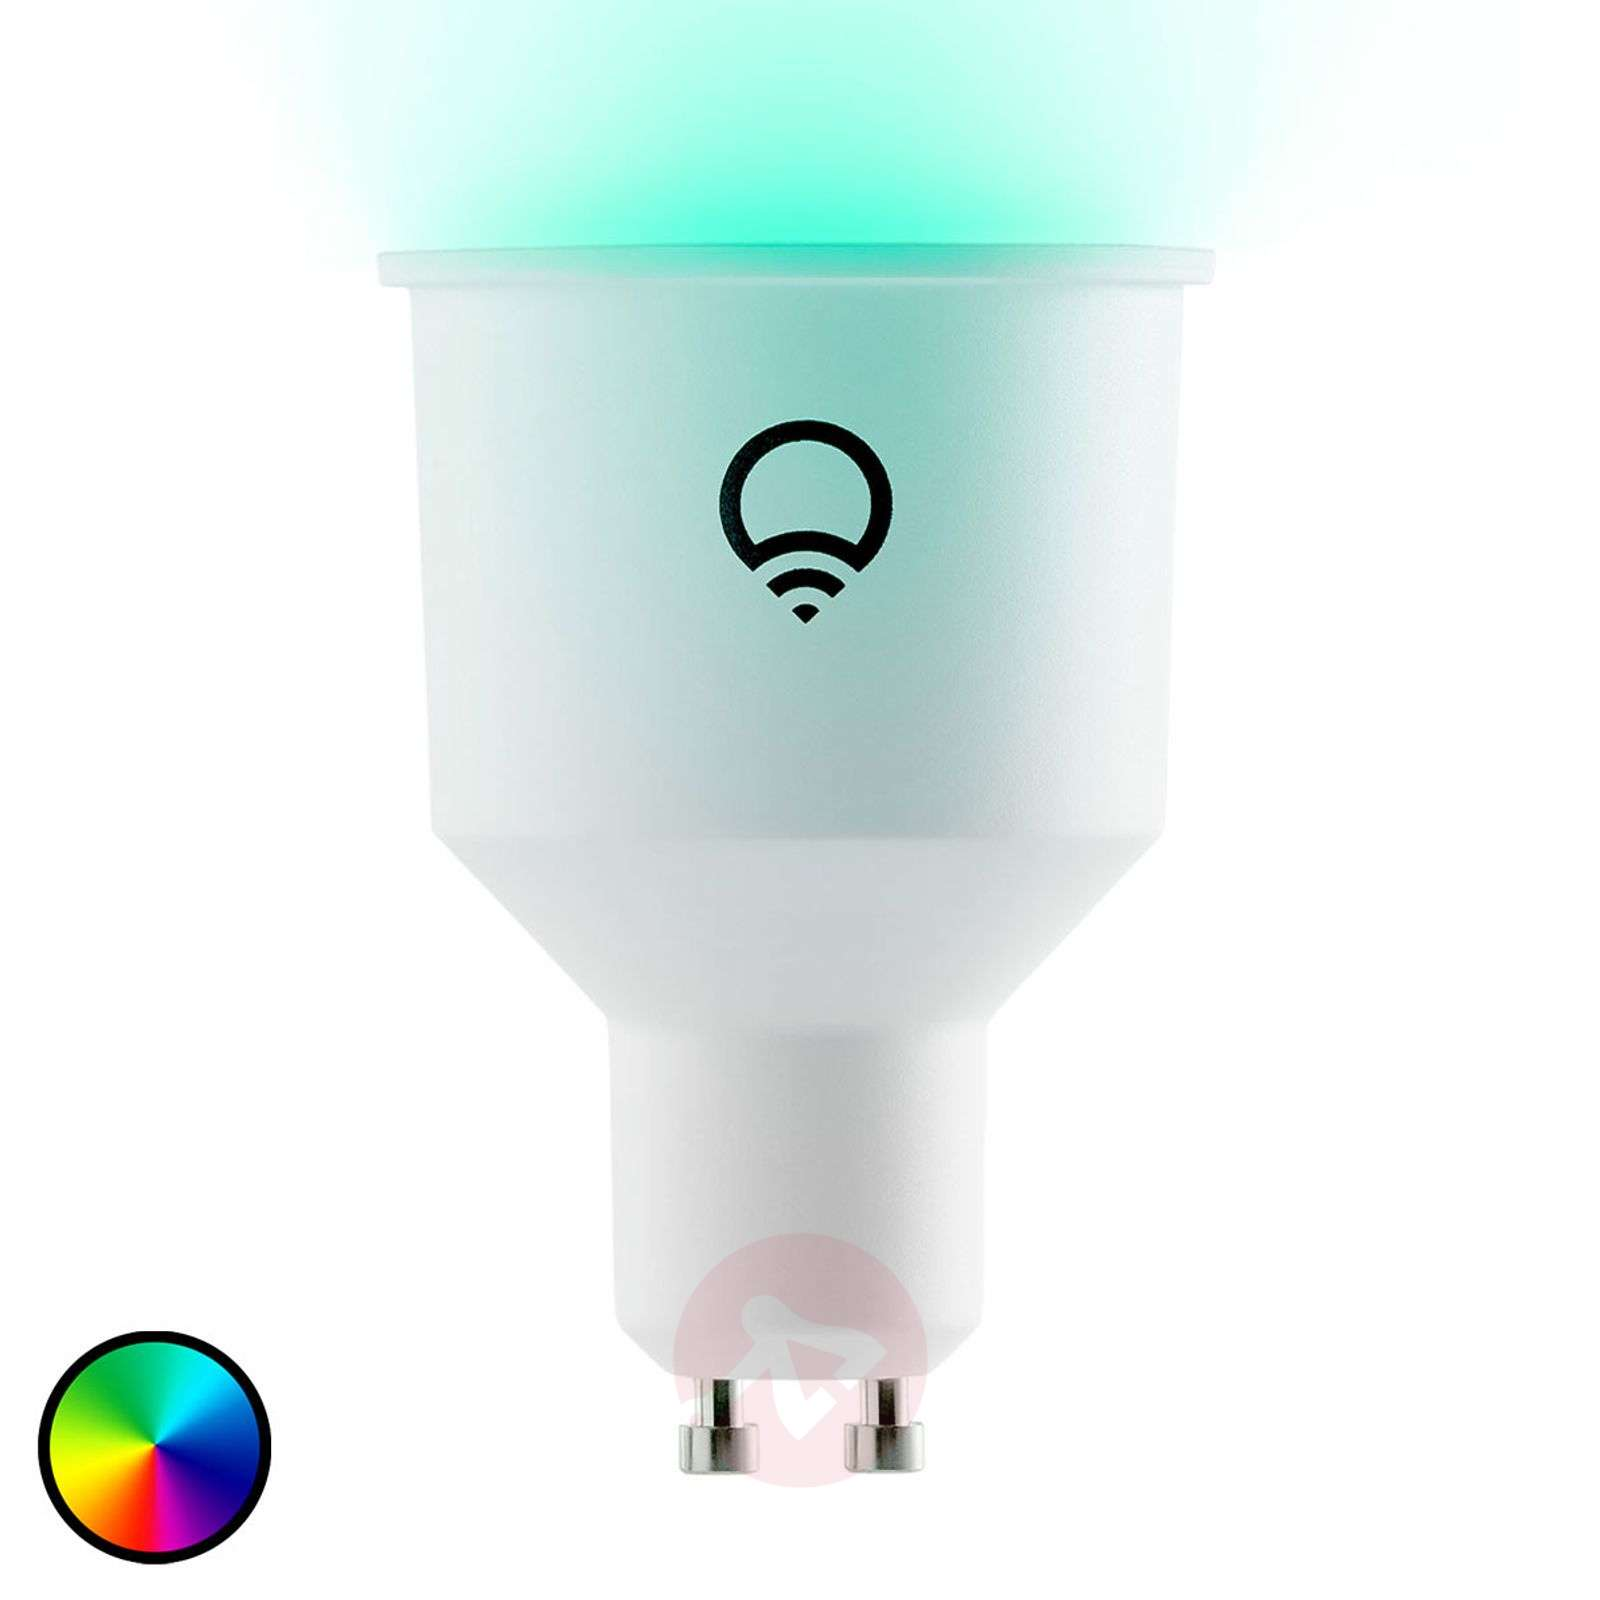 LIFX Color GU10 6 W, 2 500-9 000 K, RVB, WiFi